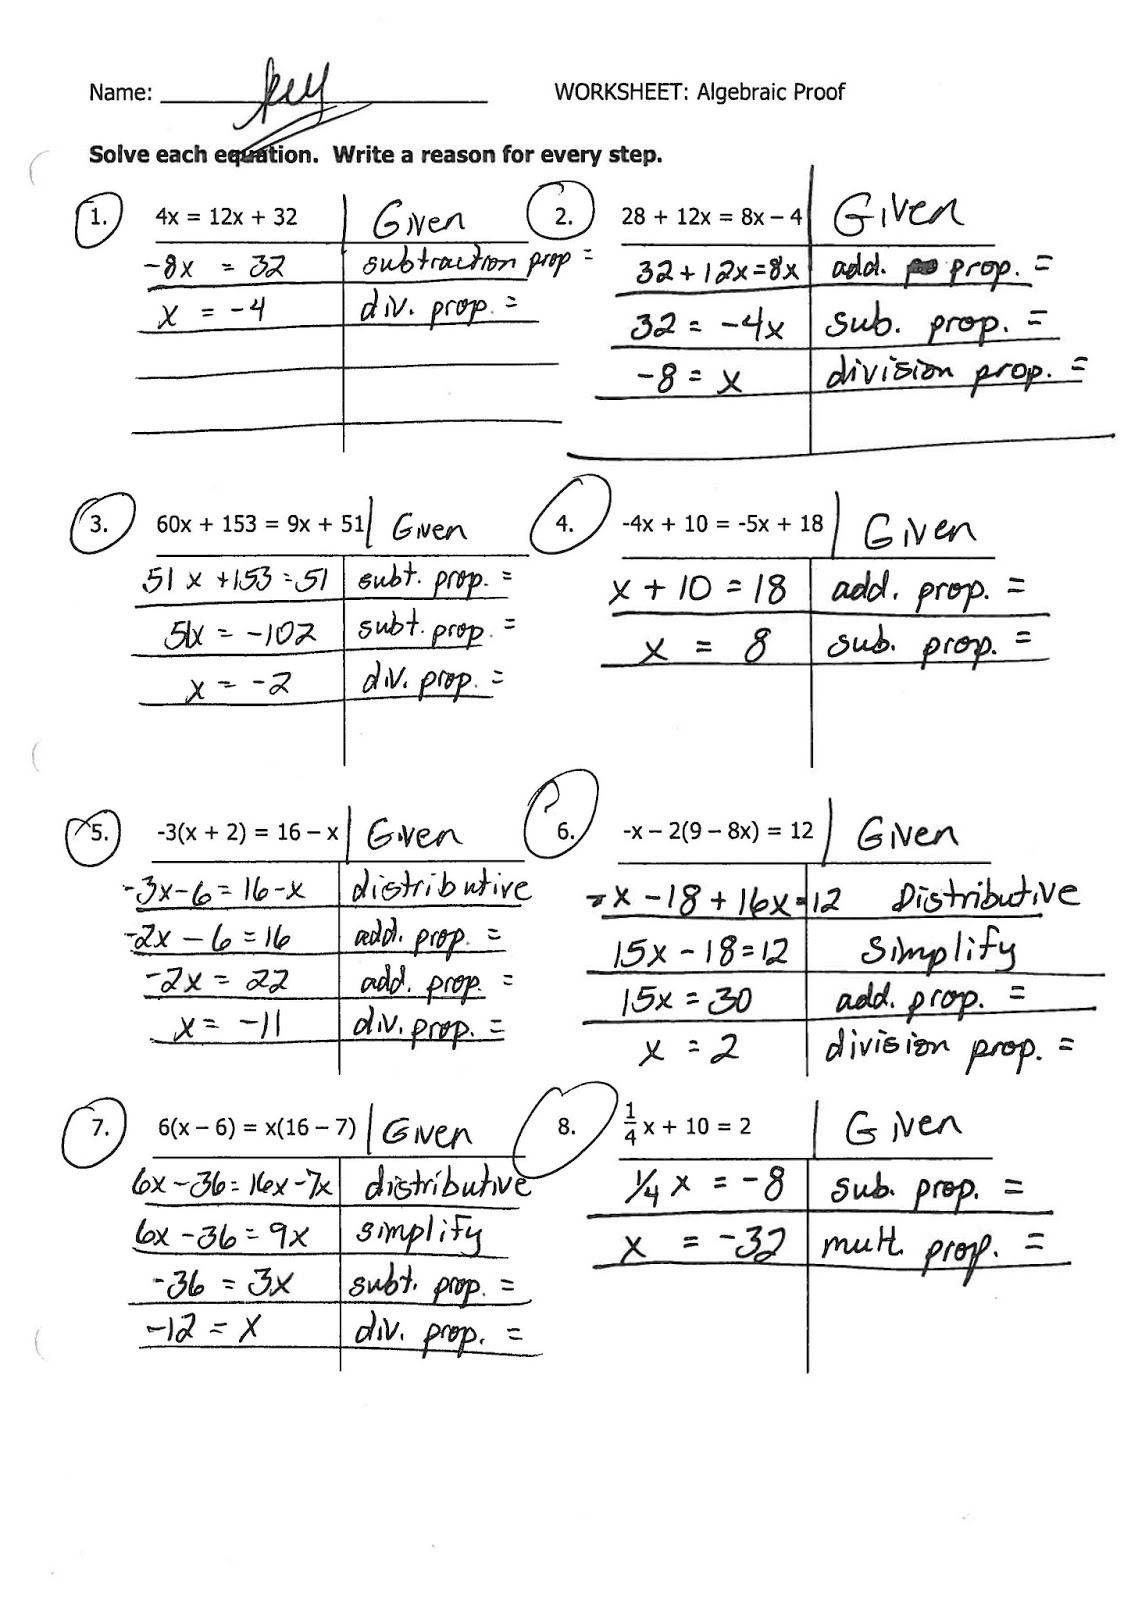 Algebraic Proofs Worksheet With Answers   db excel.com